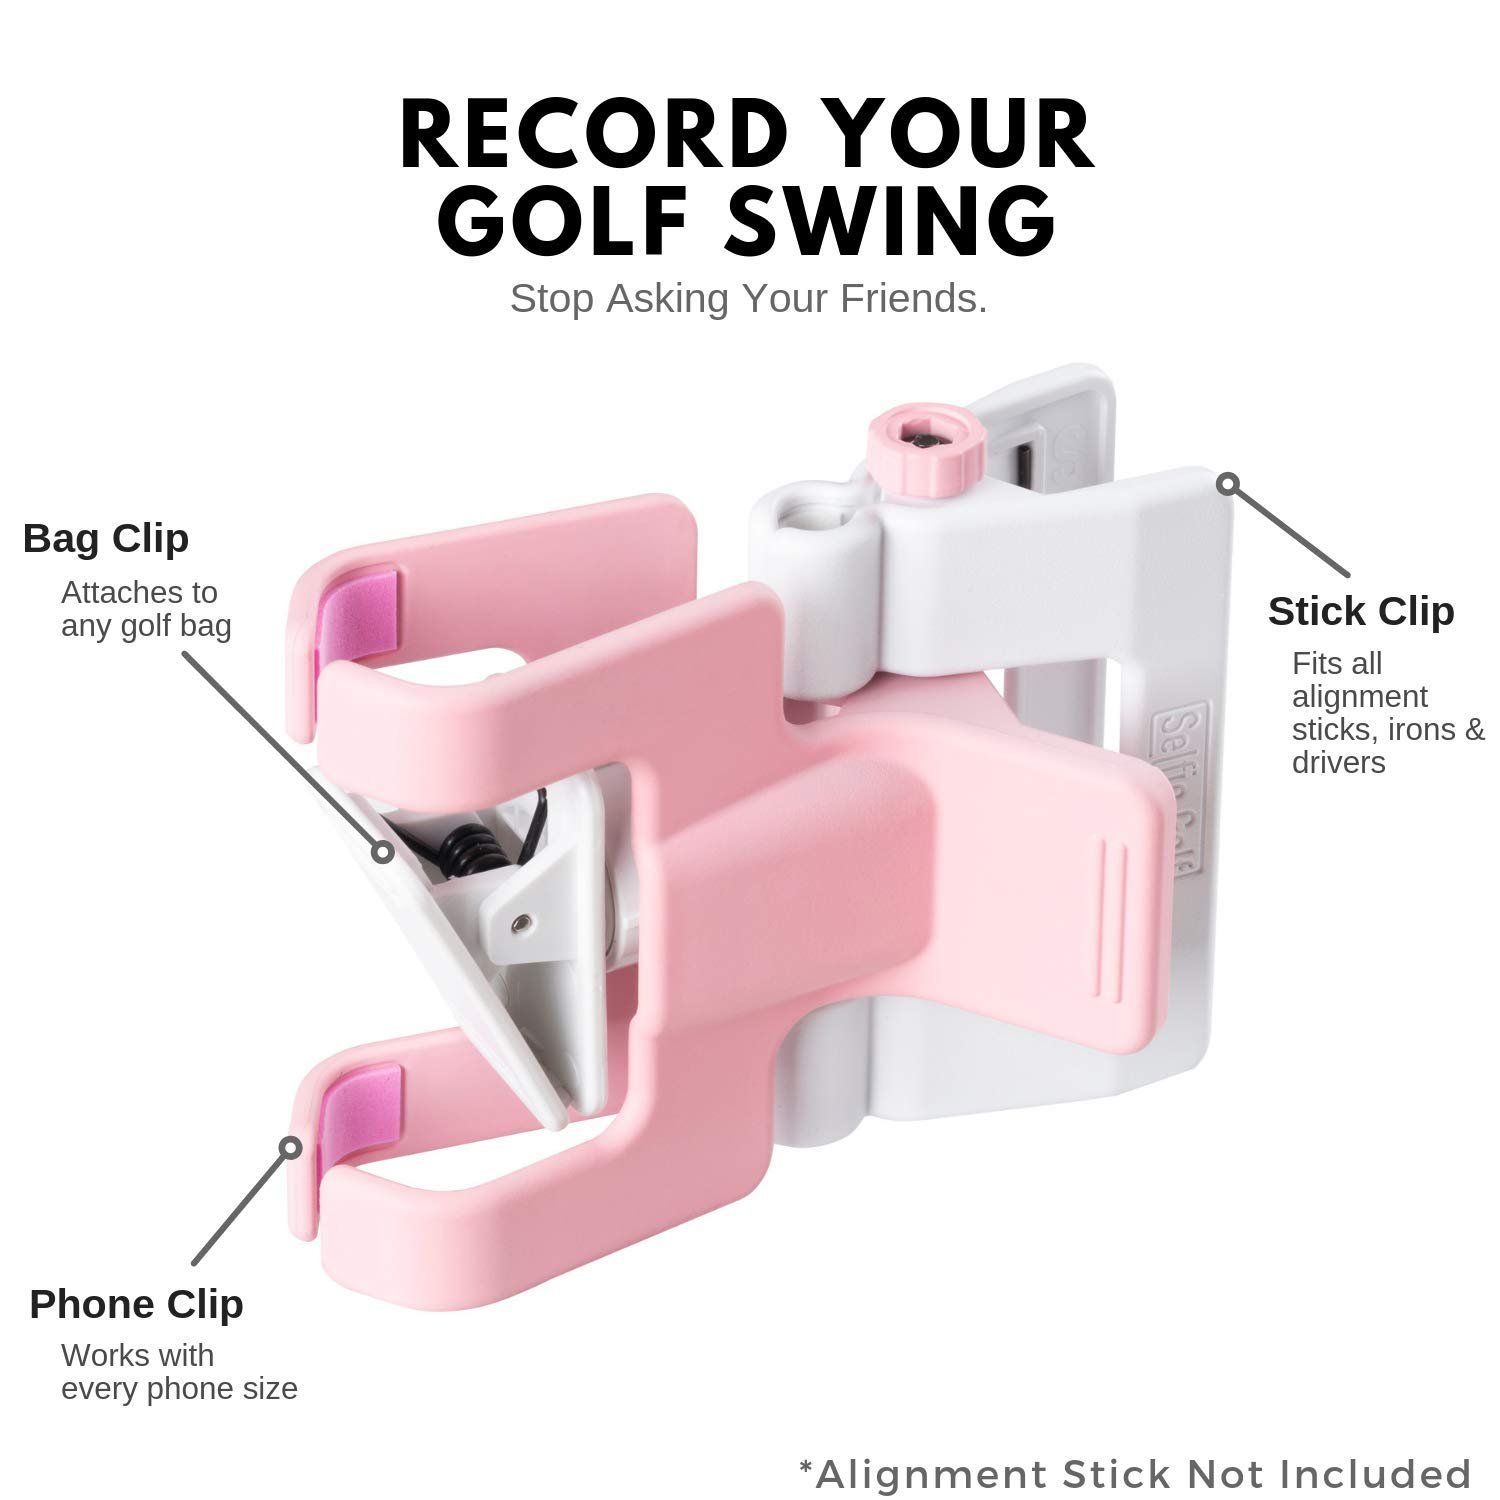 SelfieGolf Record Golf Swing - Cell Phone Clip Holder and Training Aid - Golf Accessories   Winner of The PGA Best Product   Works with Any Smart Phone, Quick Set Up (Pink/White) by Selfie Golf (Image #3)